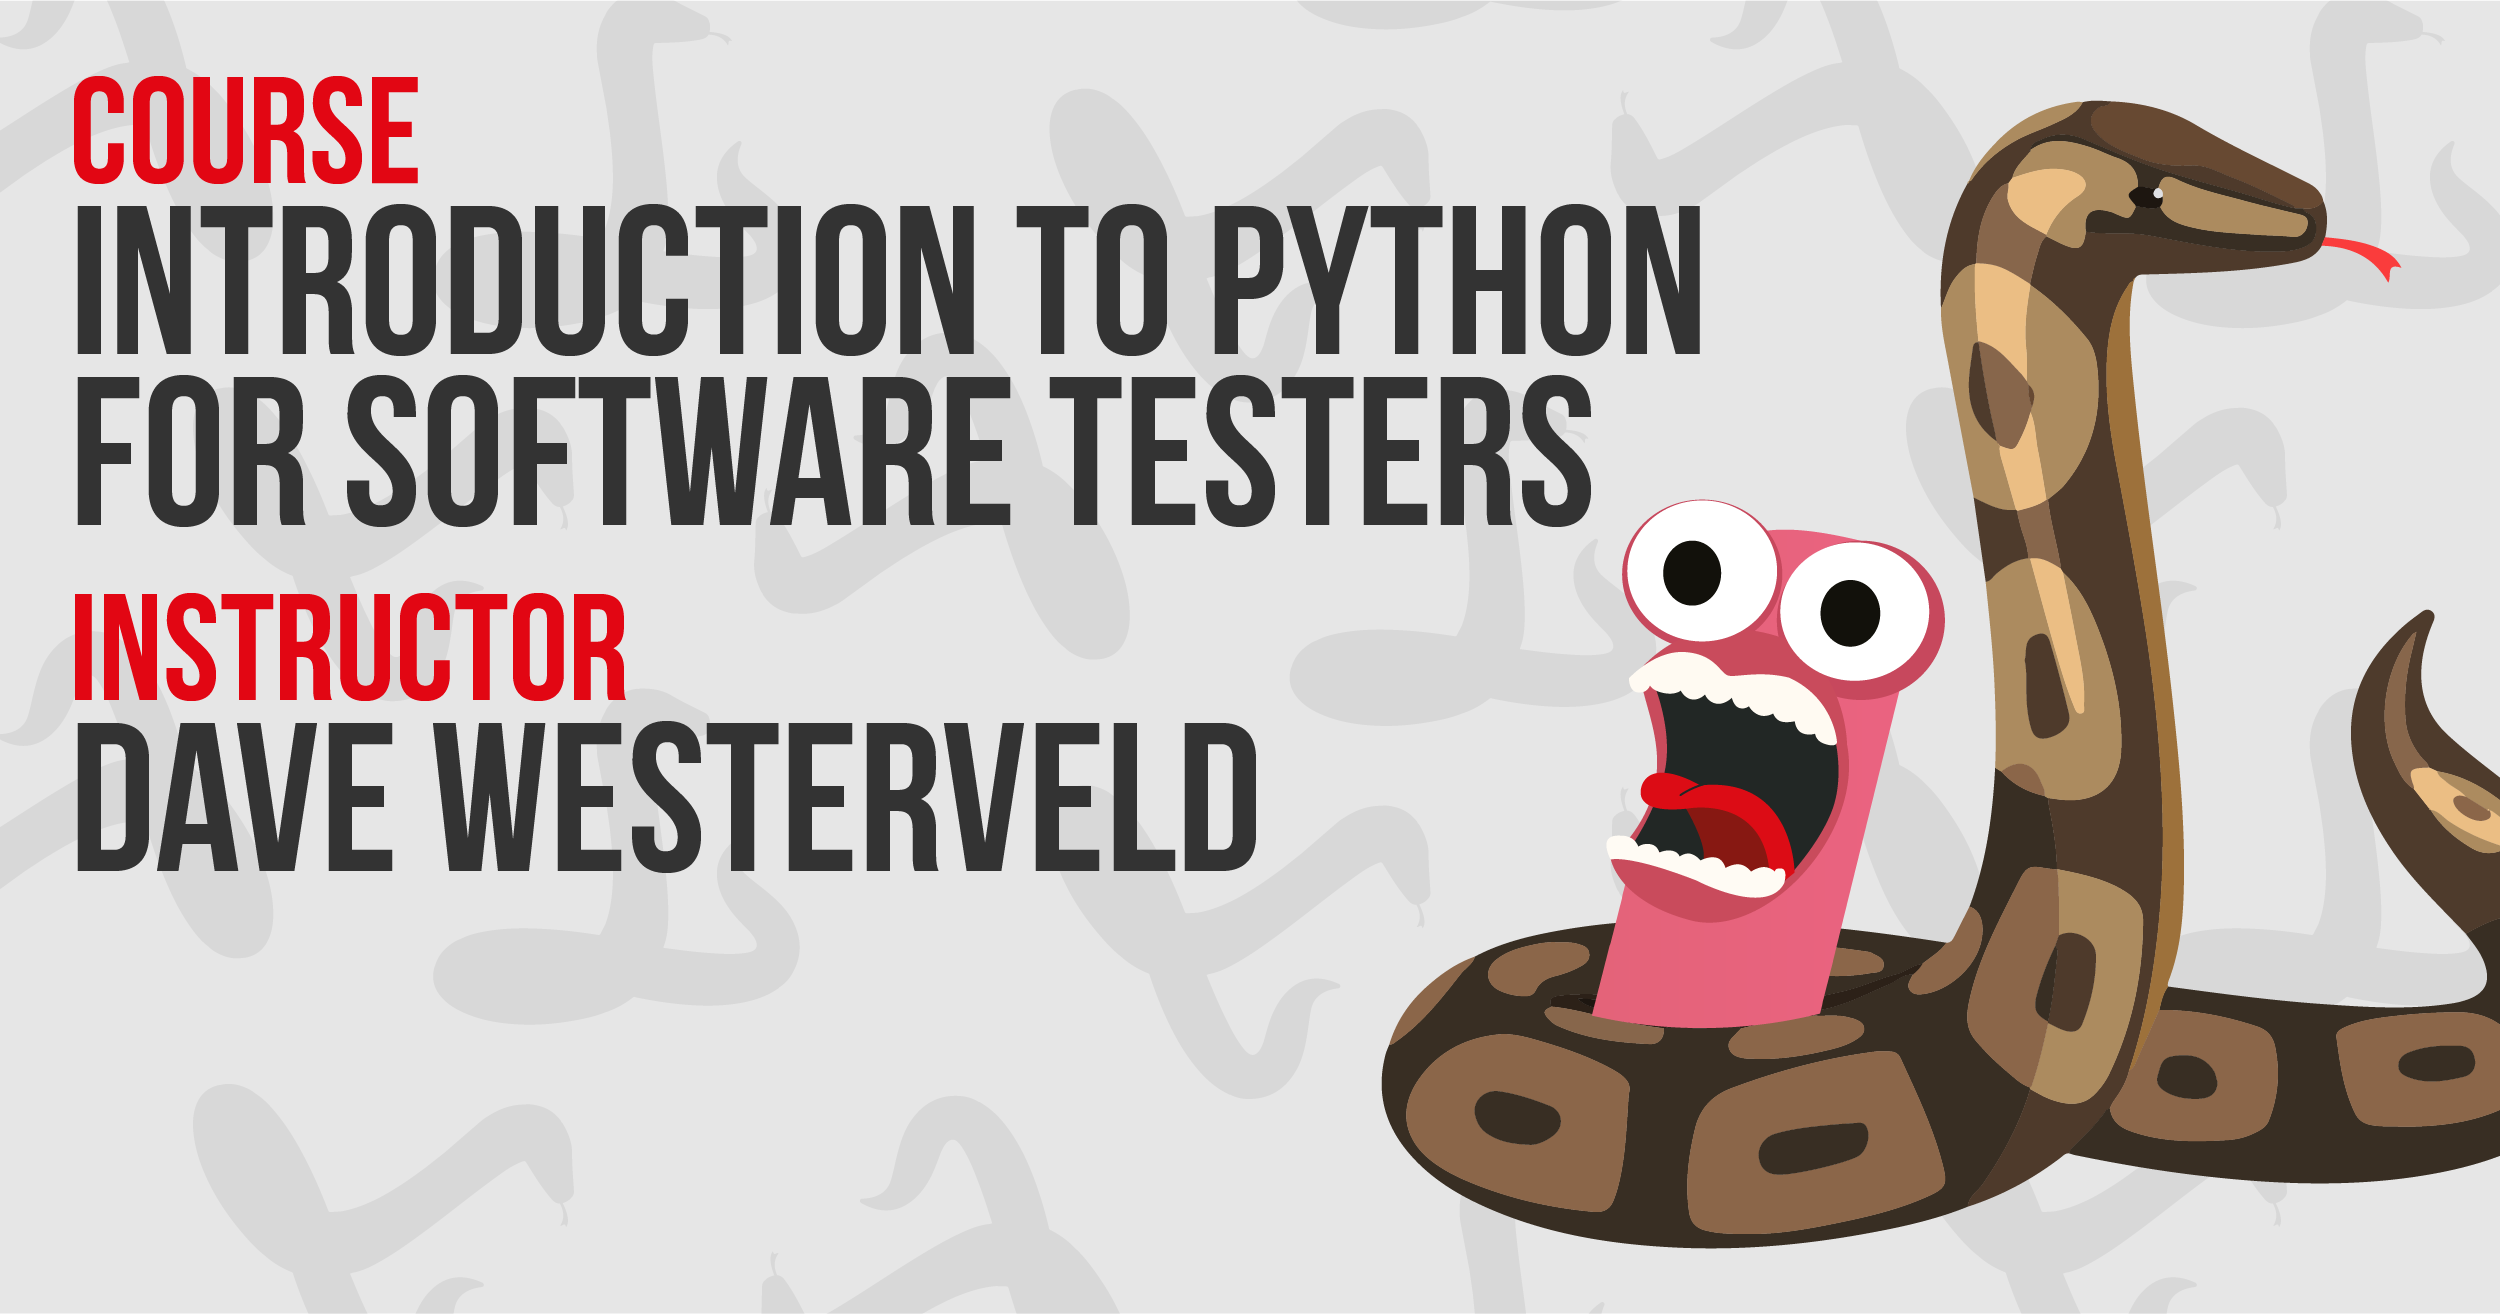 Introduction to Python for Software Testers - Dave Westerveld